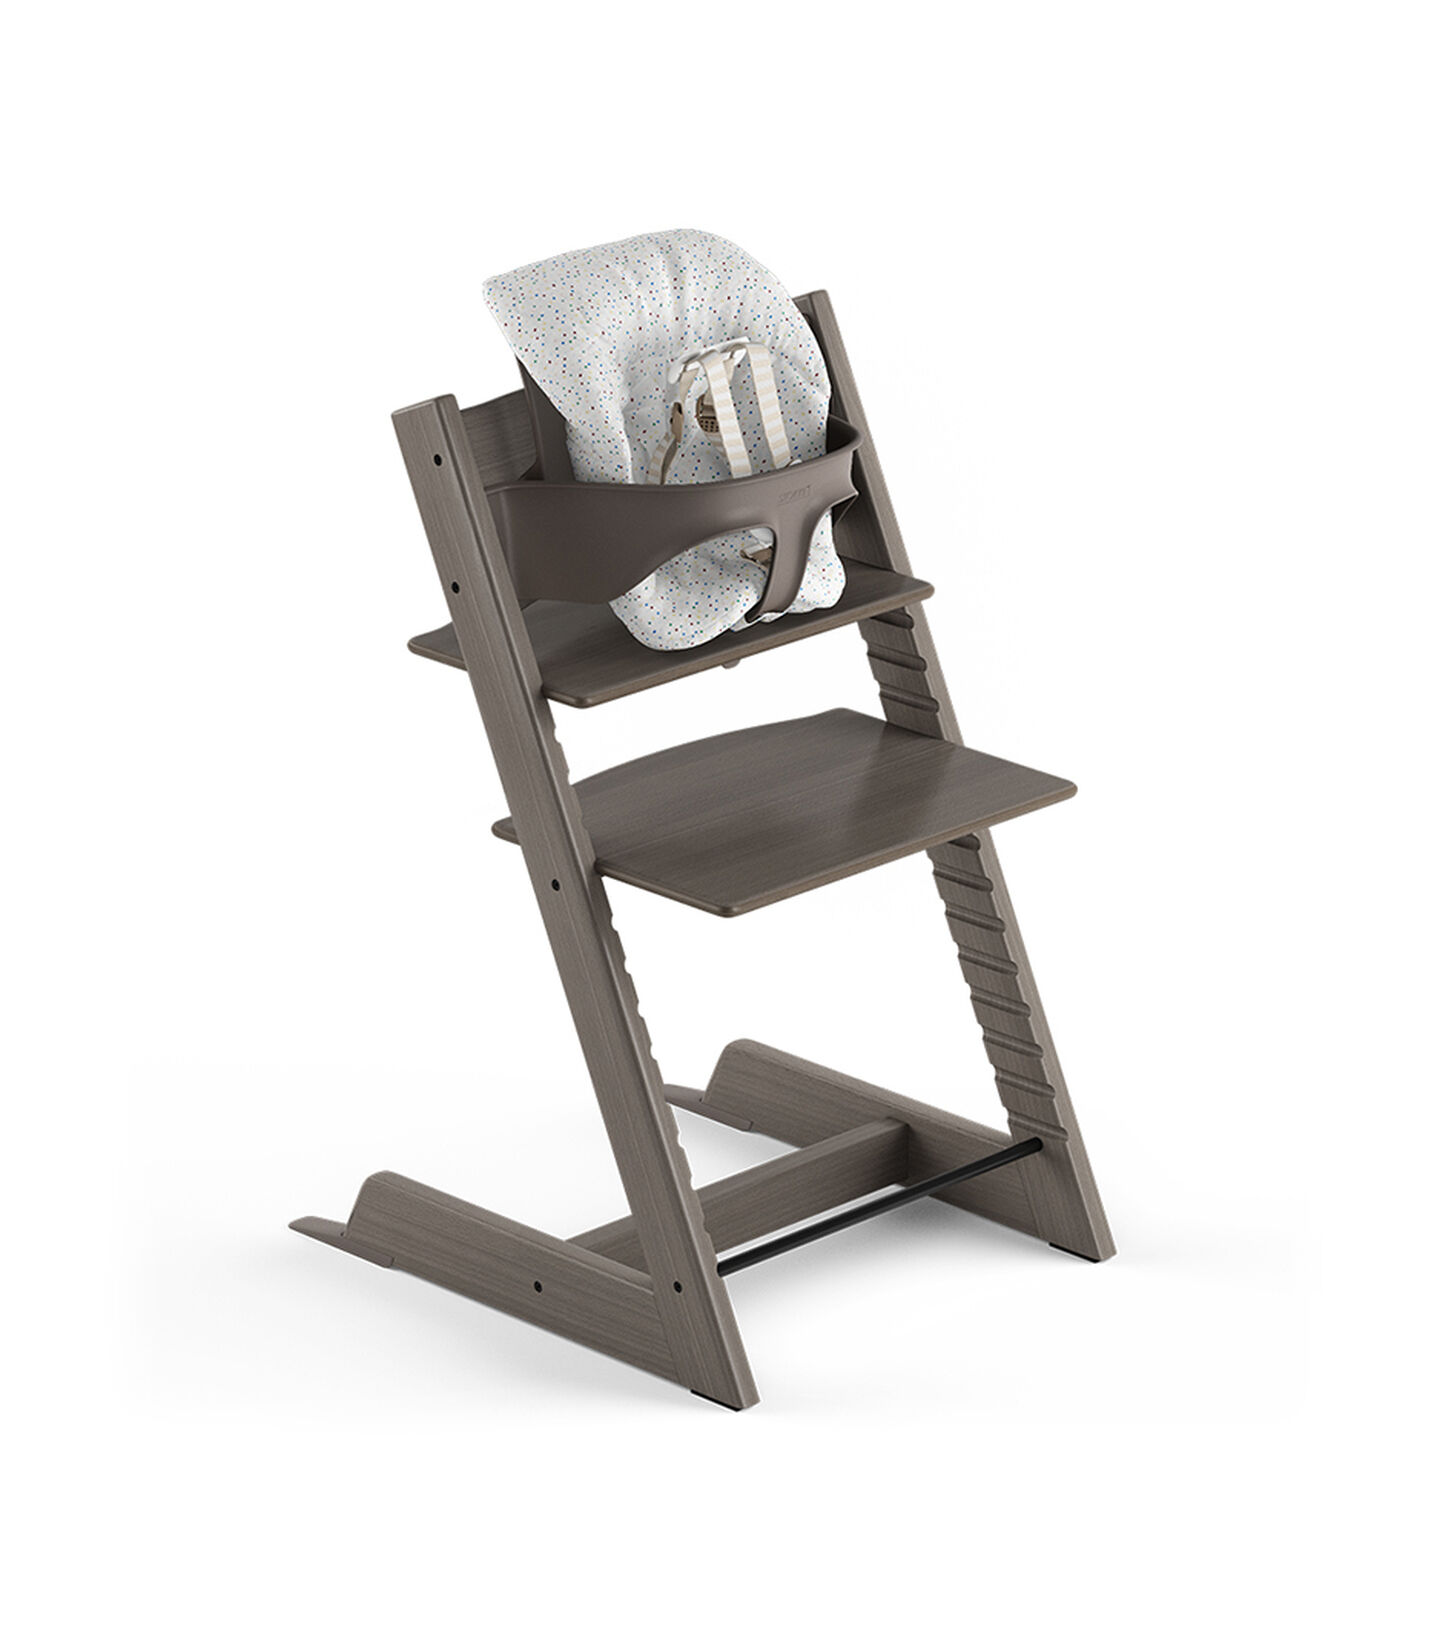 Tripp trapp chair hazy grey for Stokke usato tripp trapp